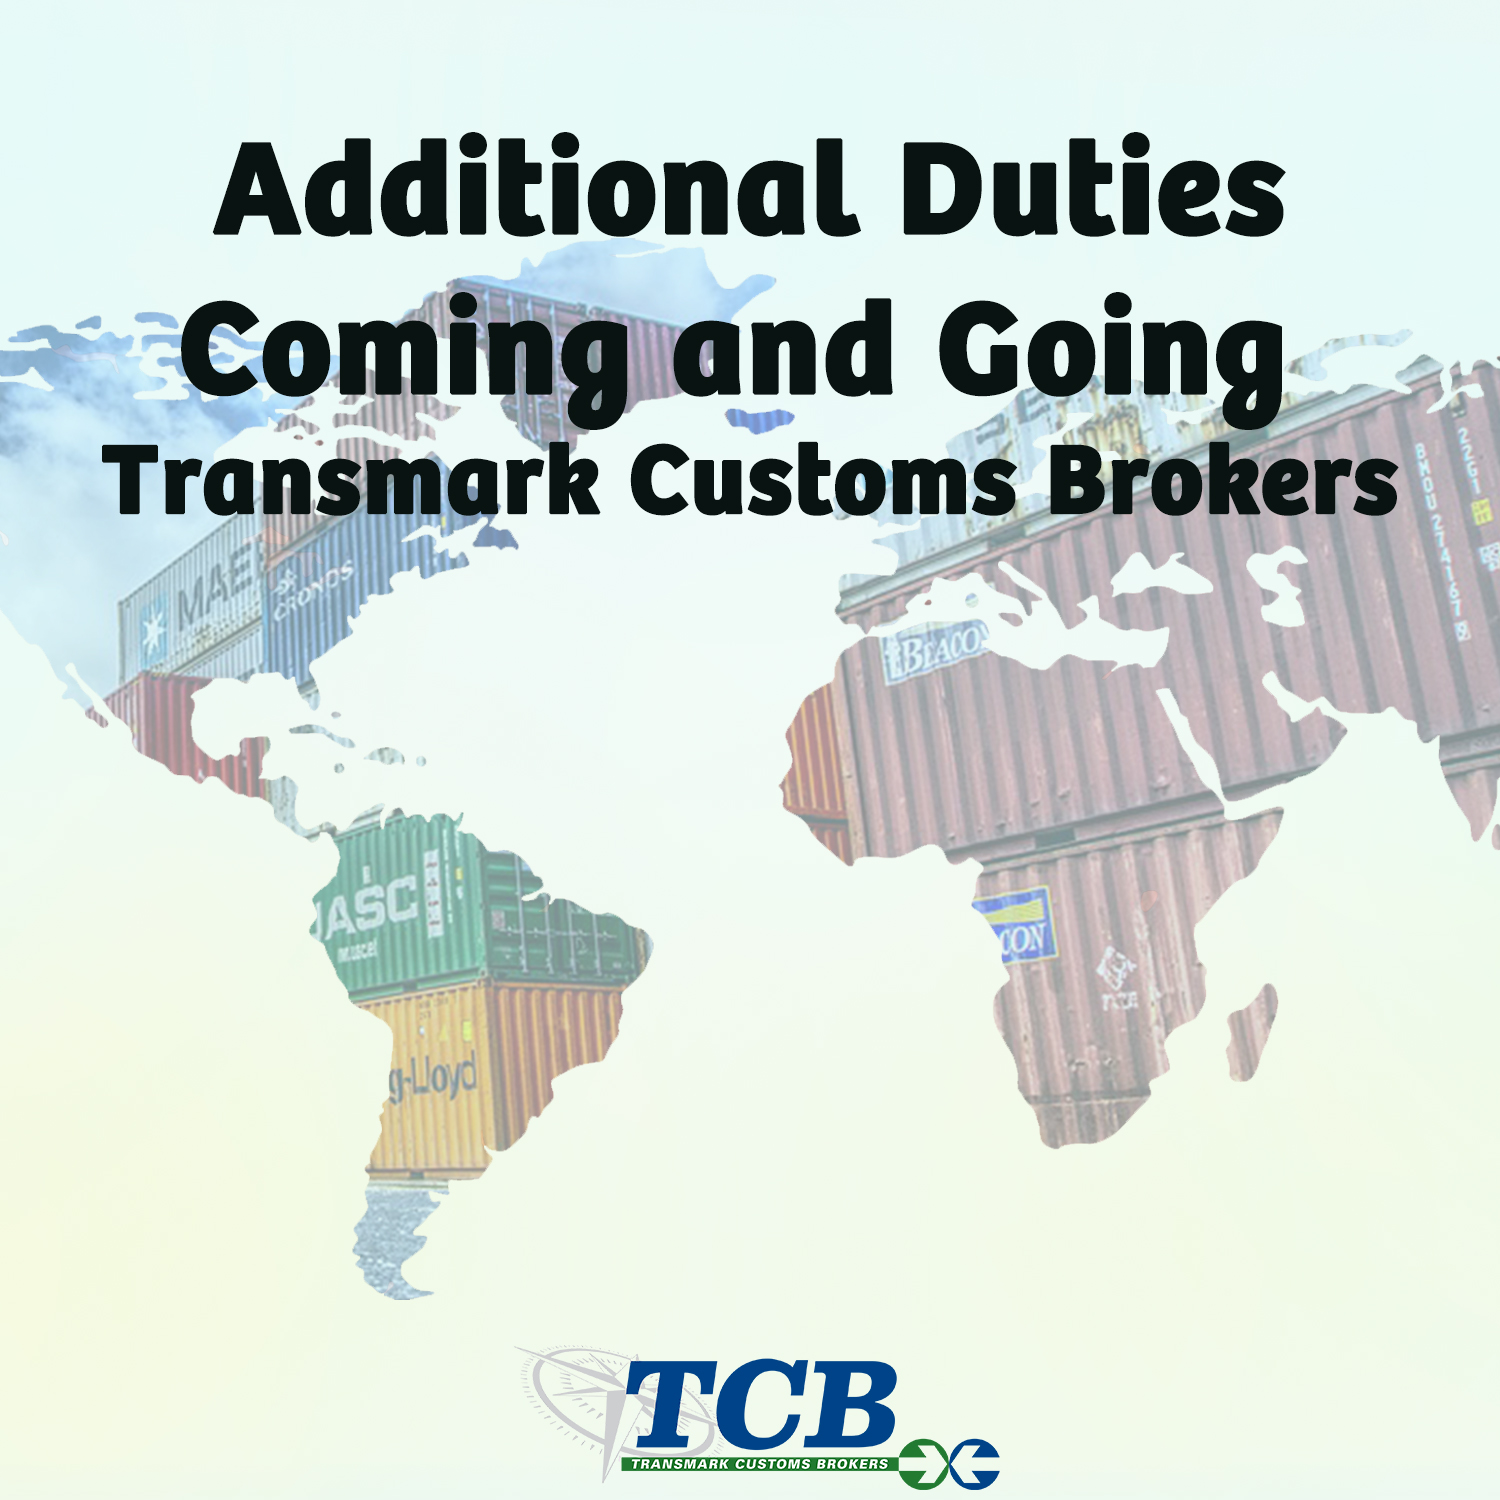 TCB Blog Additional Duties JUNE2019.jpg